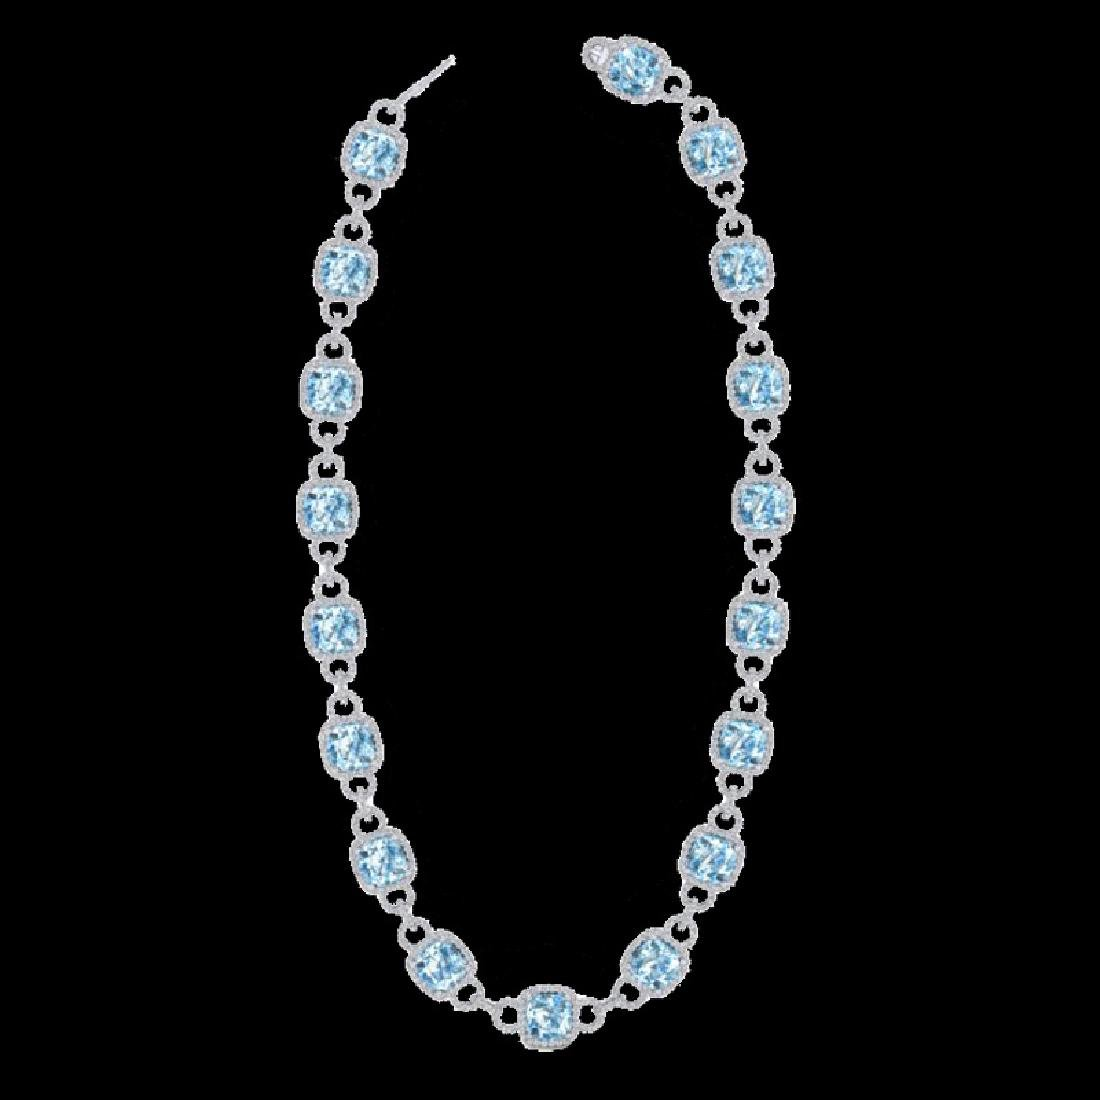 66 CTW Topaz & Micro VS/SI Diamond Eternity Necklace - 2